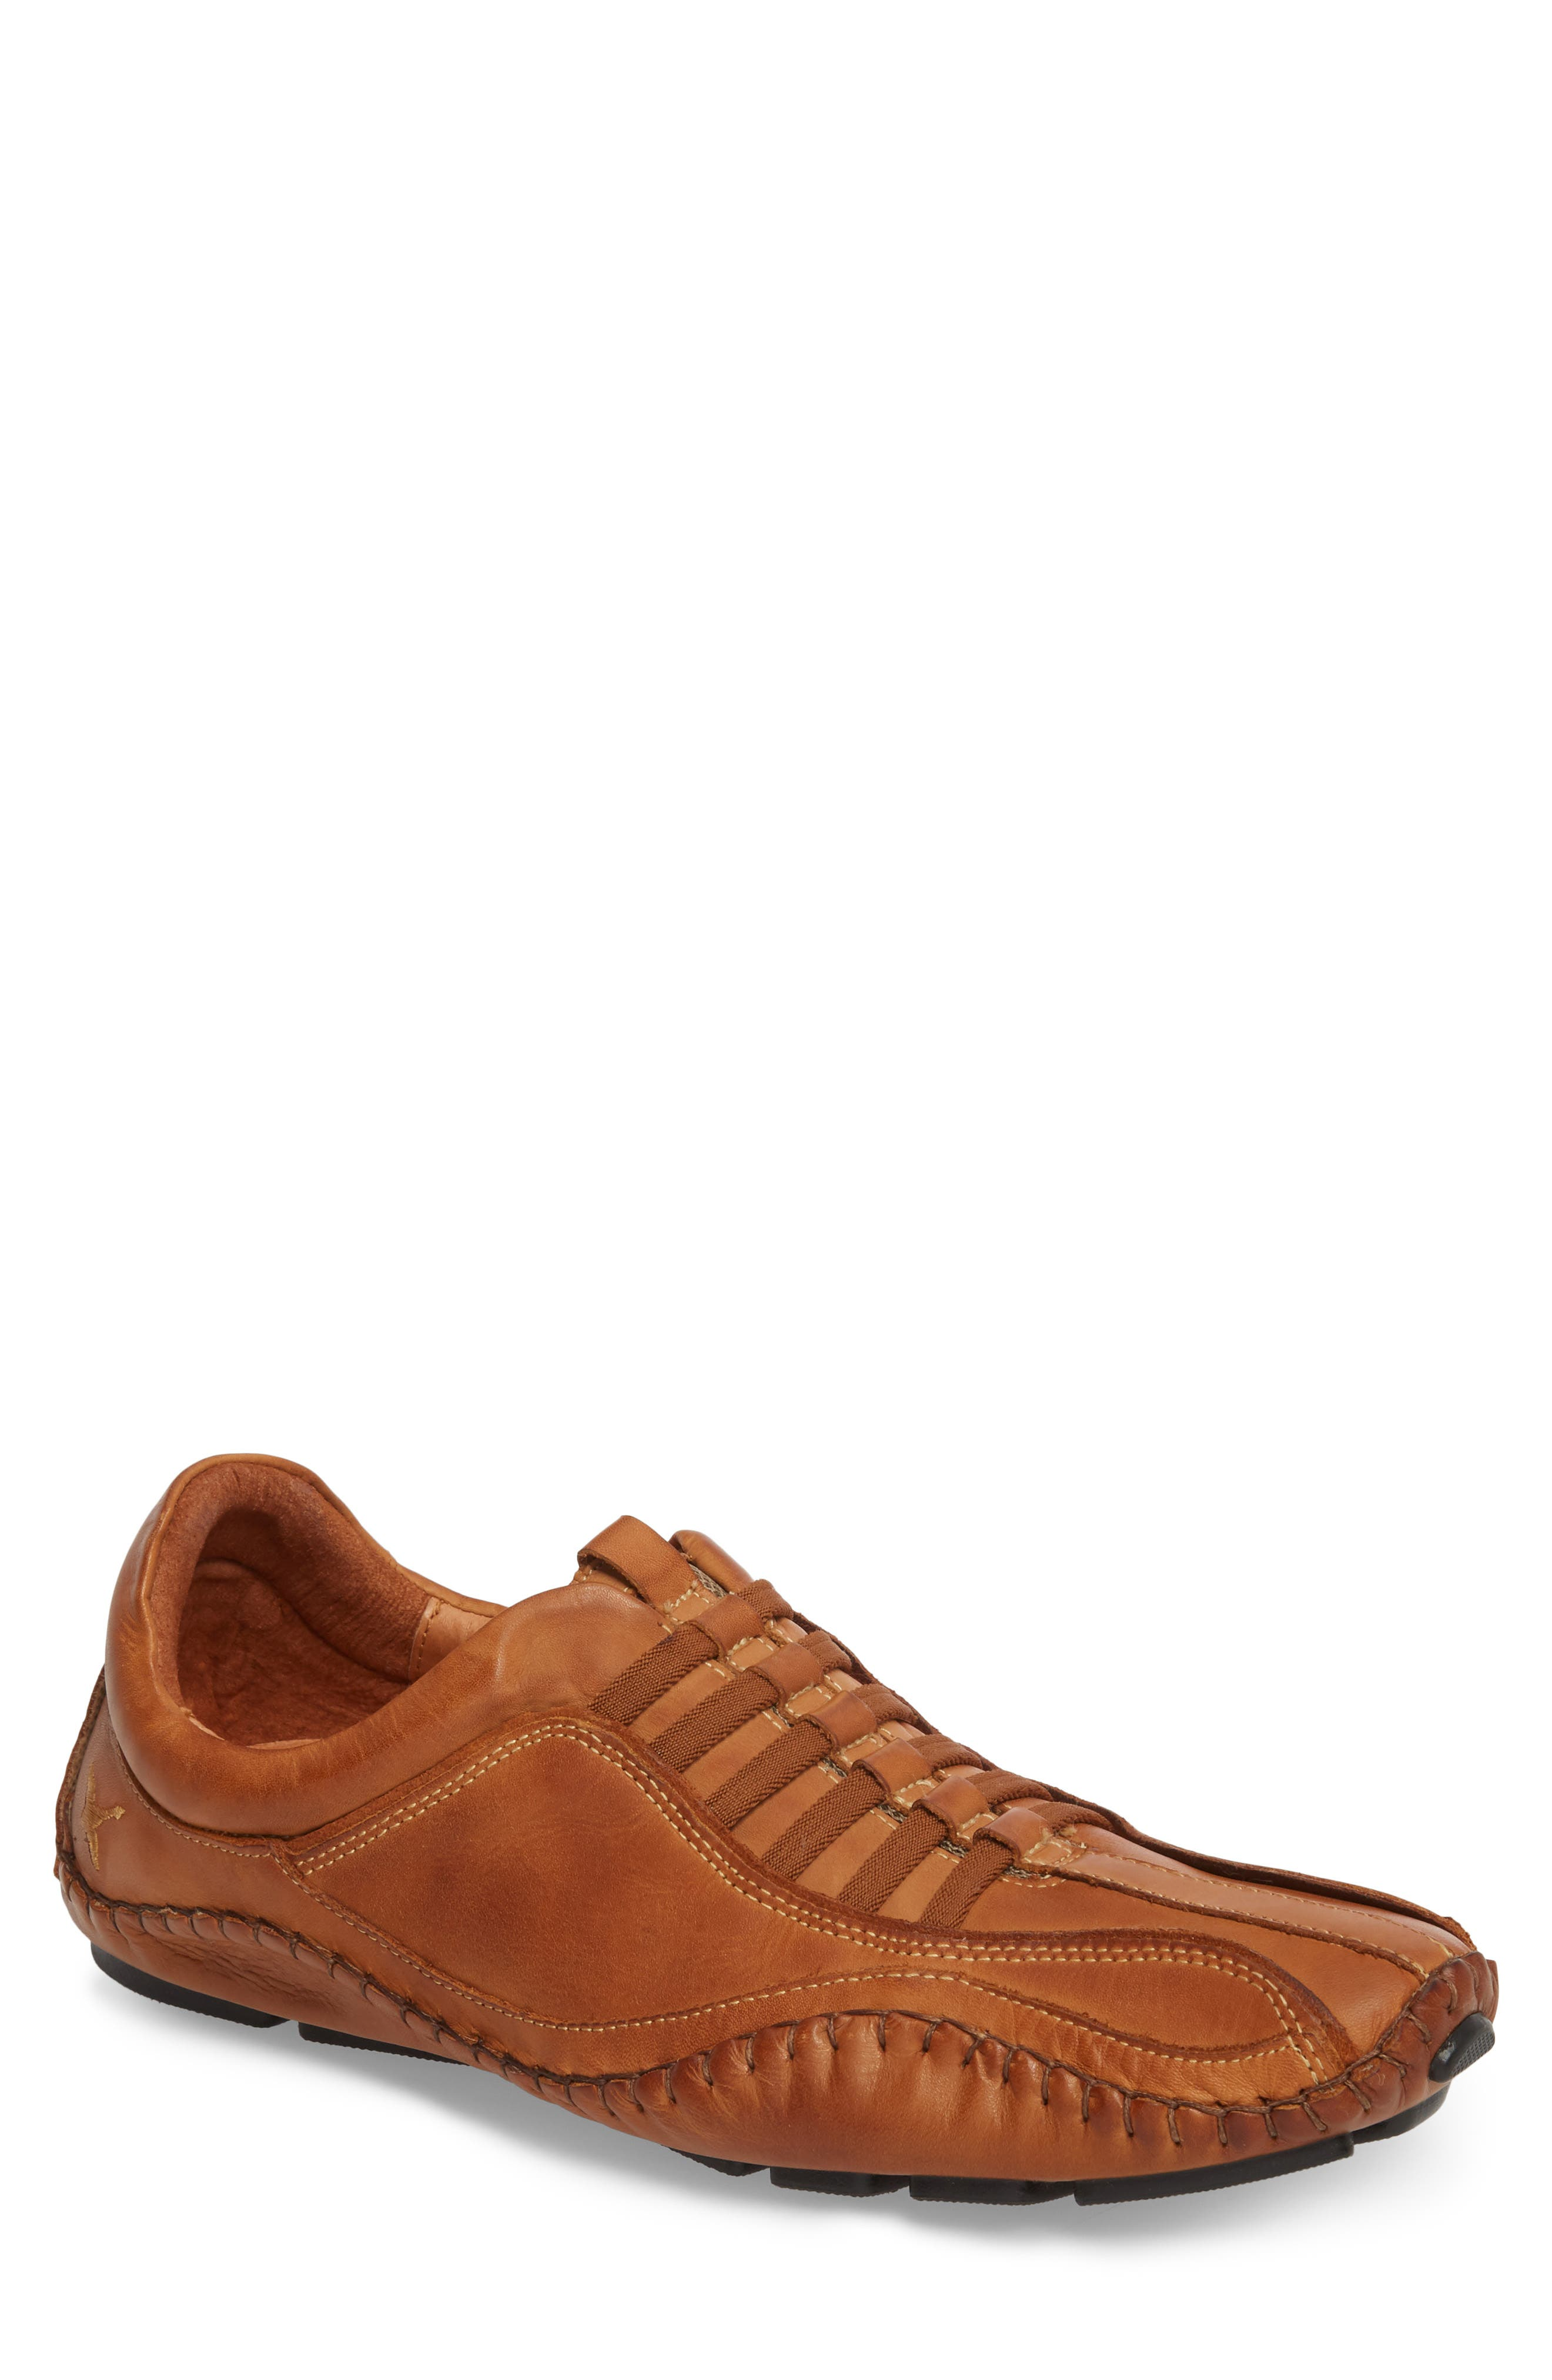 'Fuencarral' Driving Shoe,                         Main,                         color, LIGHT BROWN